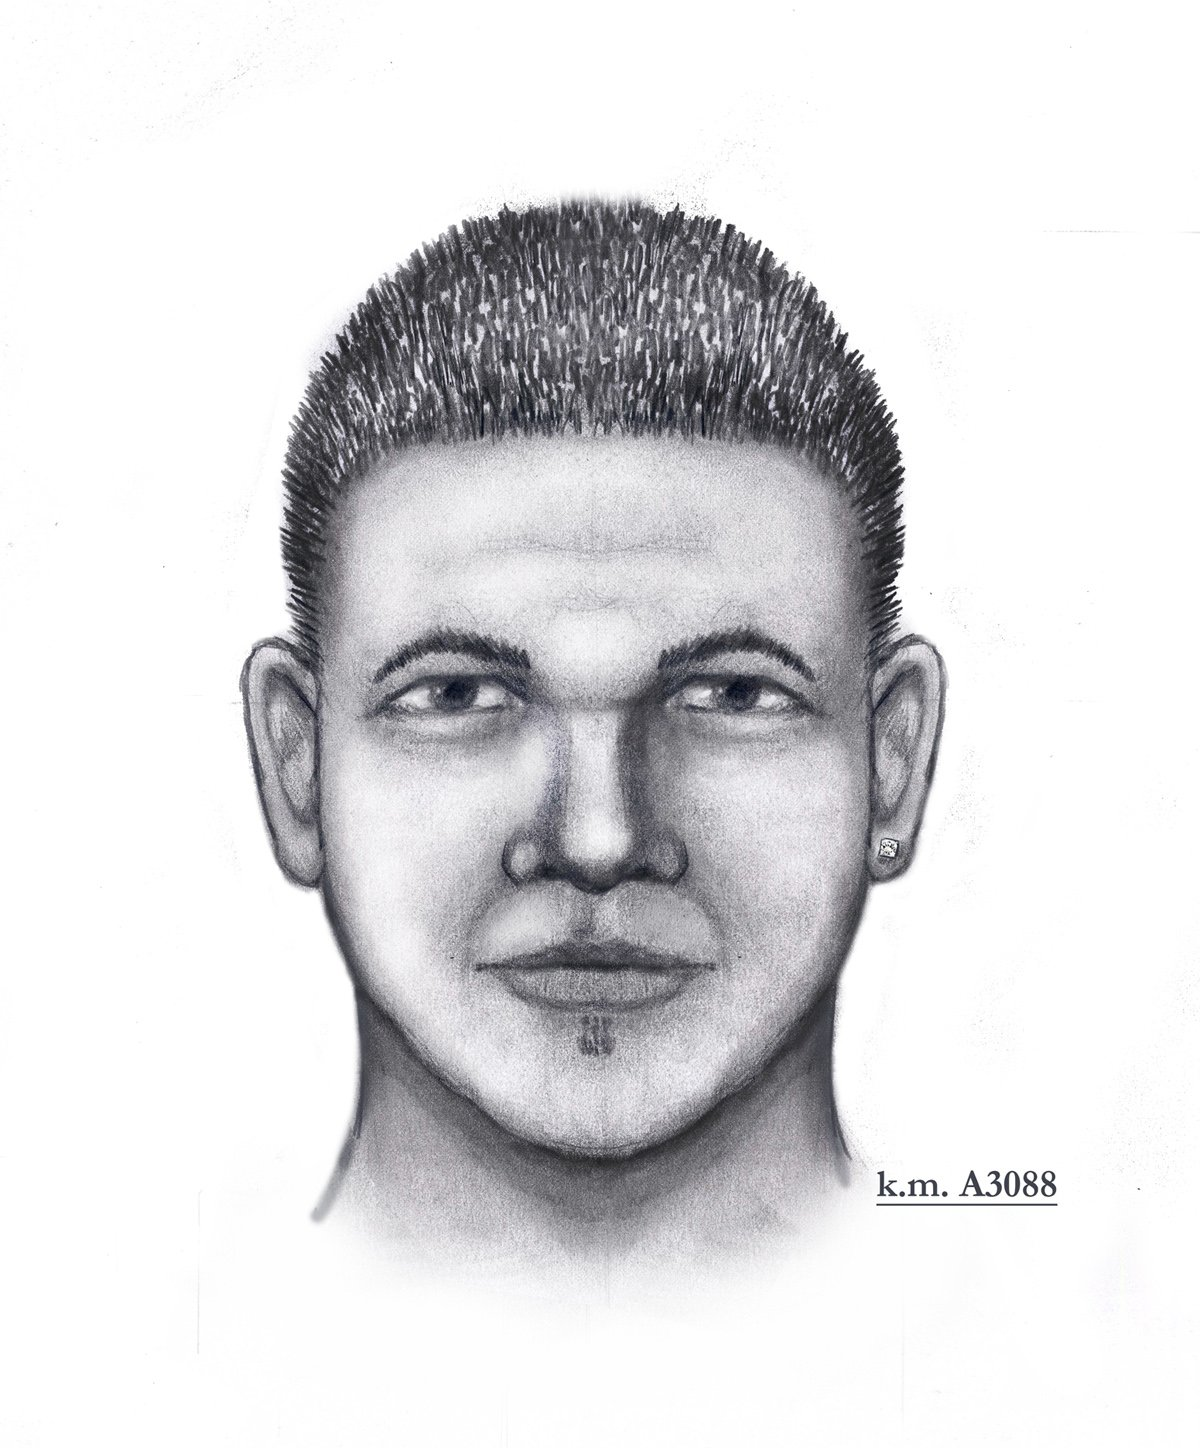 Victim's description of the suspect in the attempted kidnapping in the 1800 block of N. 38th Avenue on Feb. 6